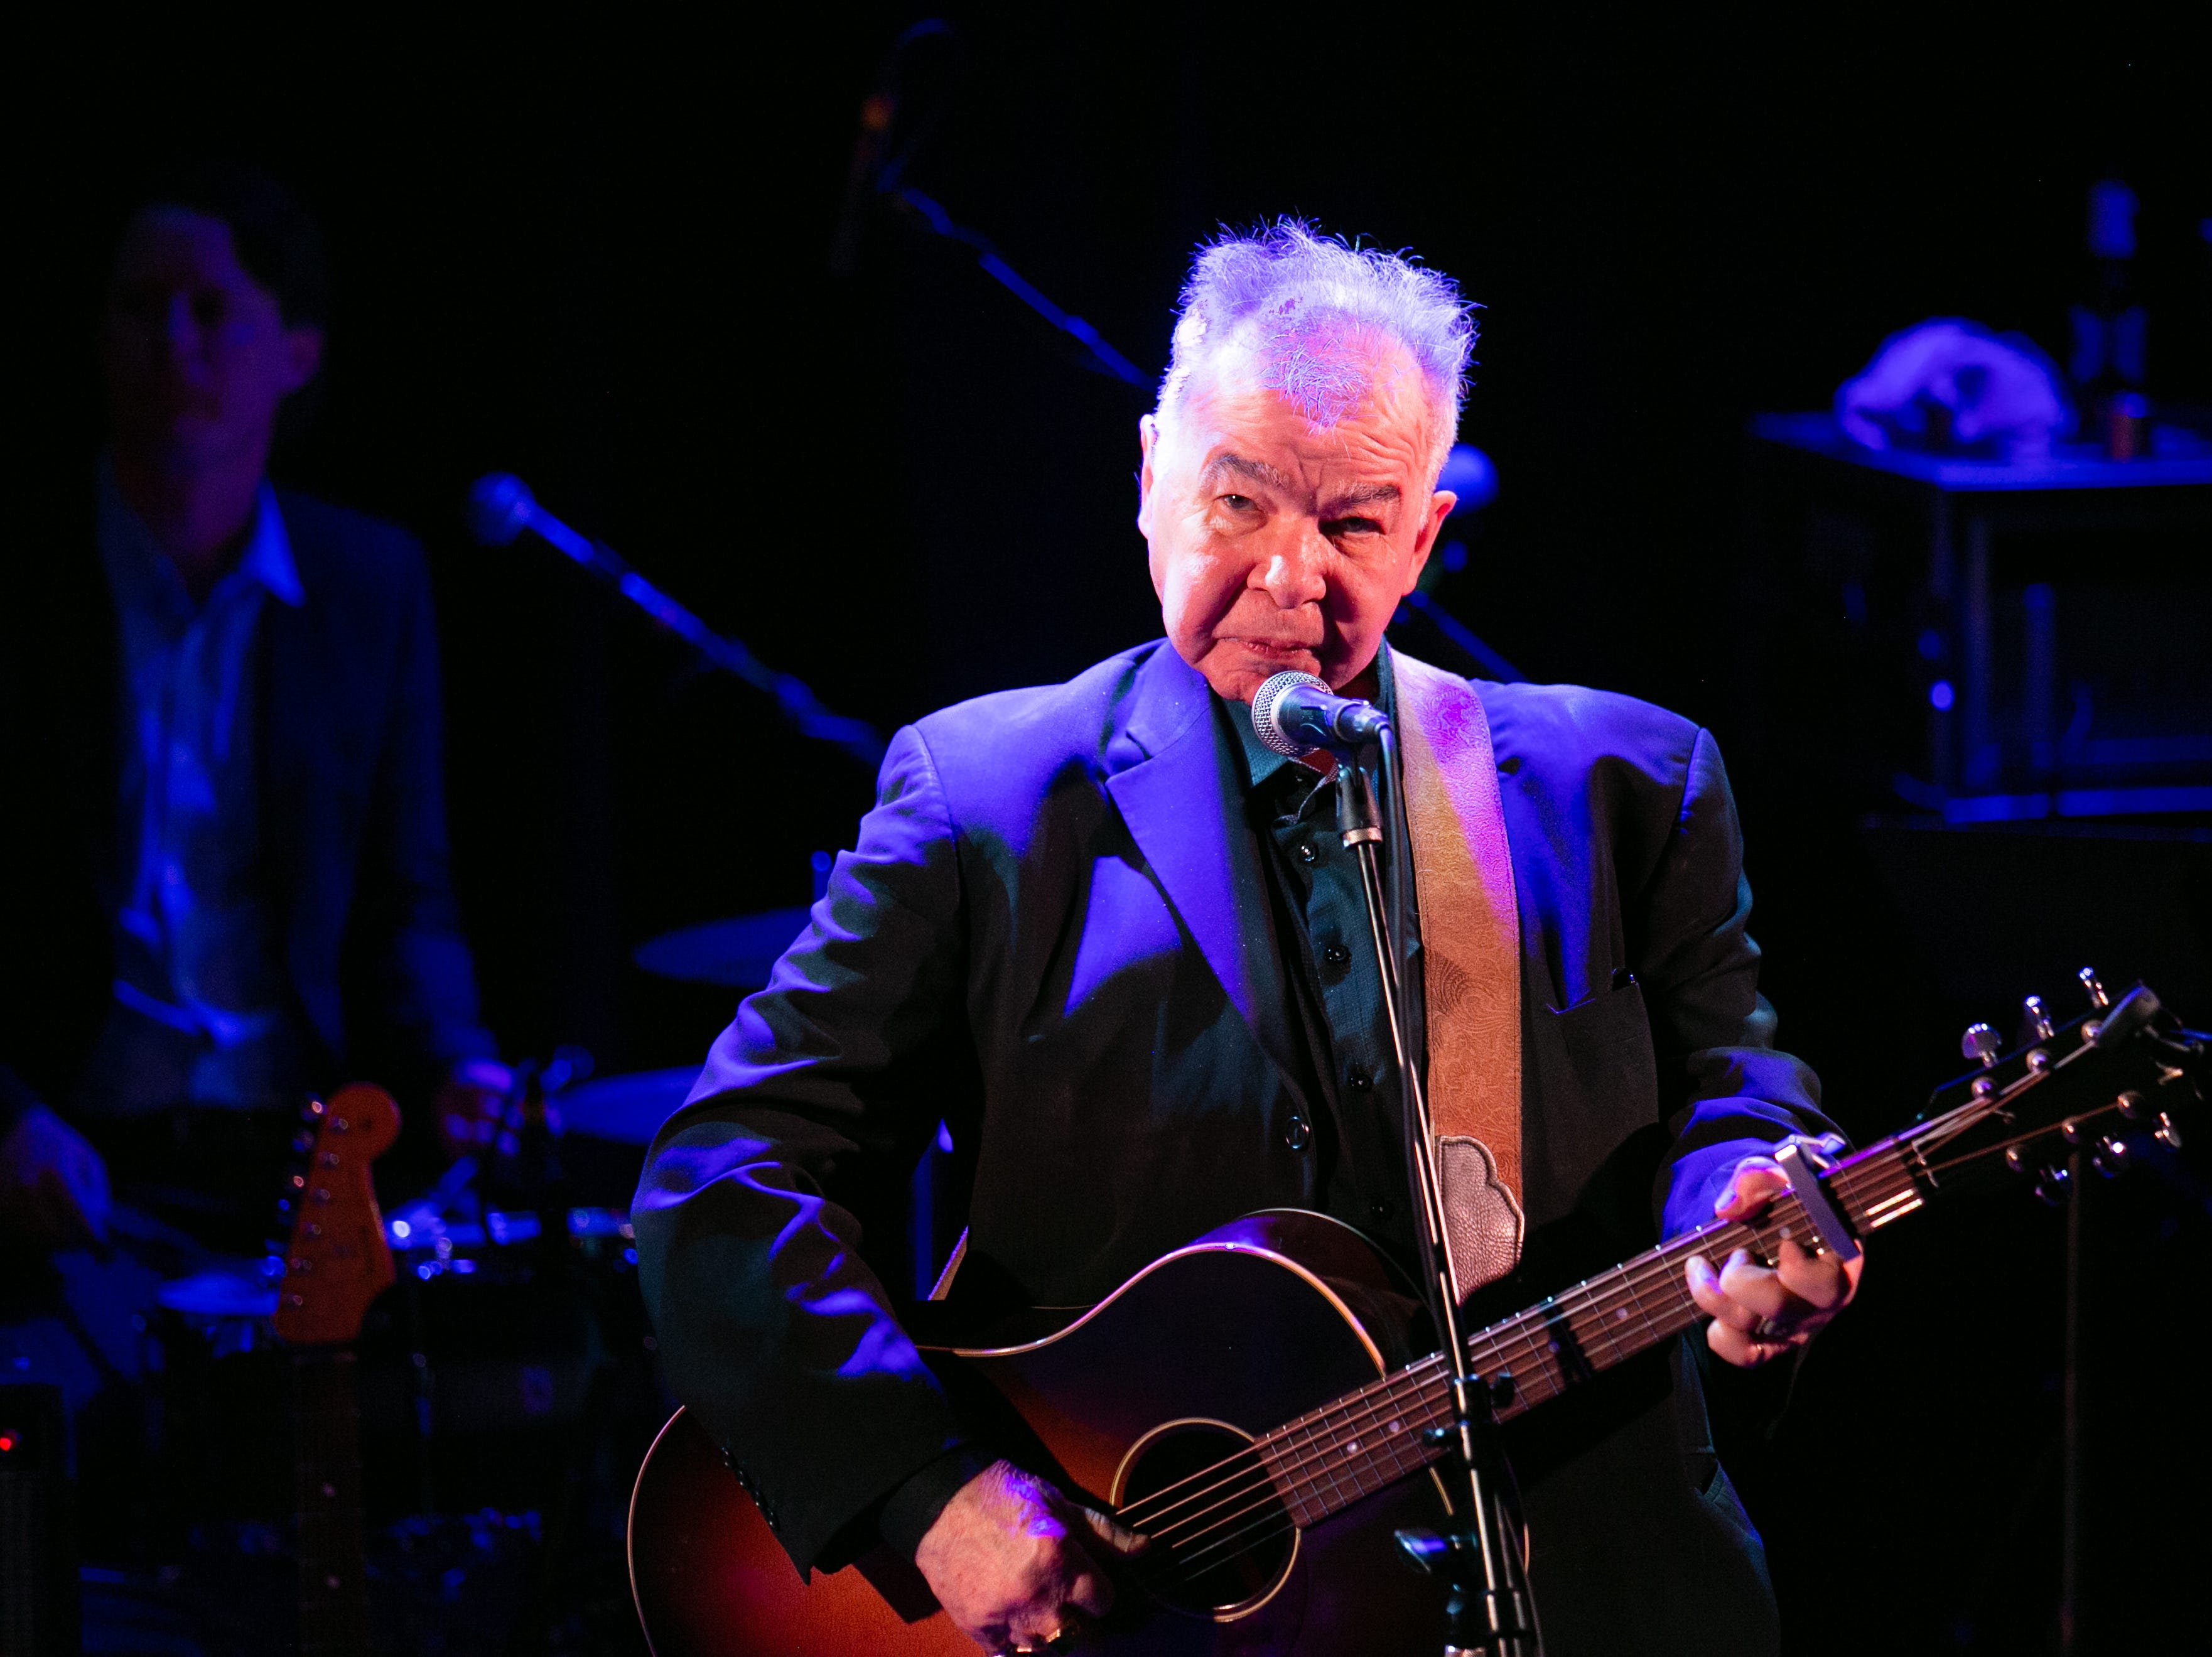 John Prine performed during his all-star tribute at the Troubadour in Hollywood Saturday night.